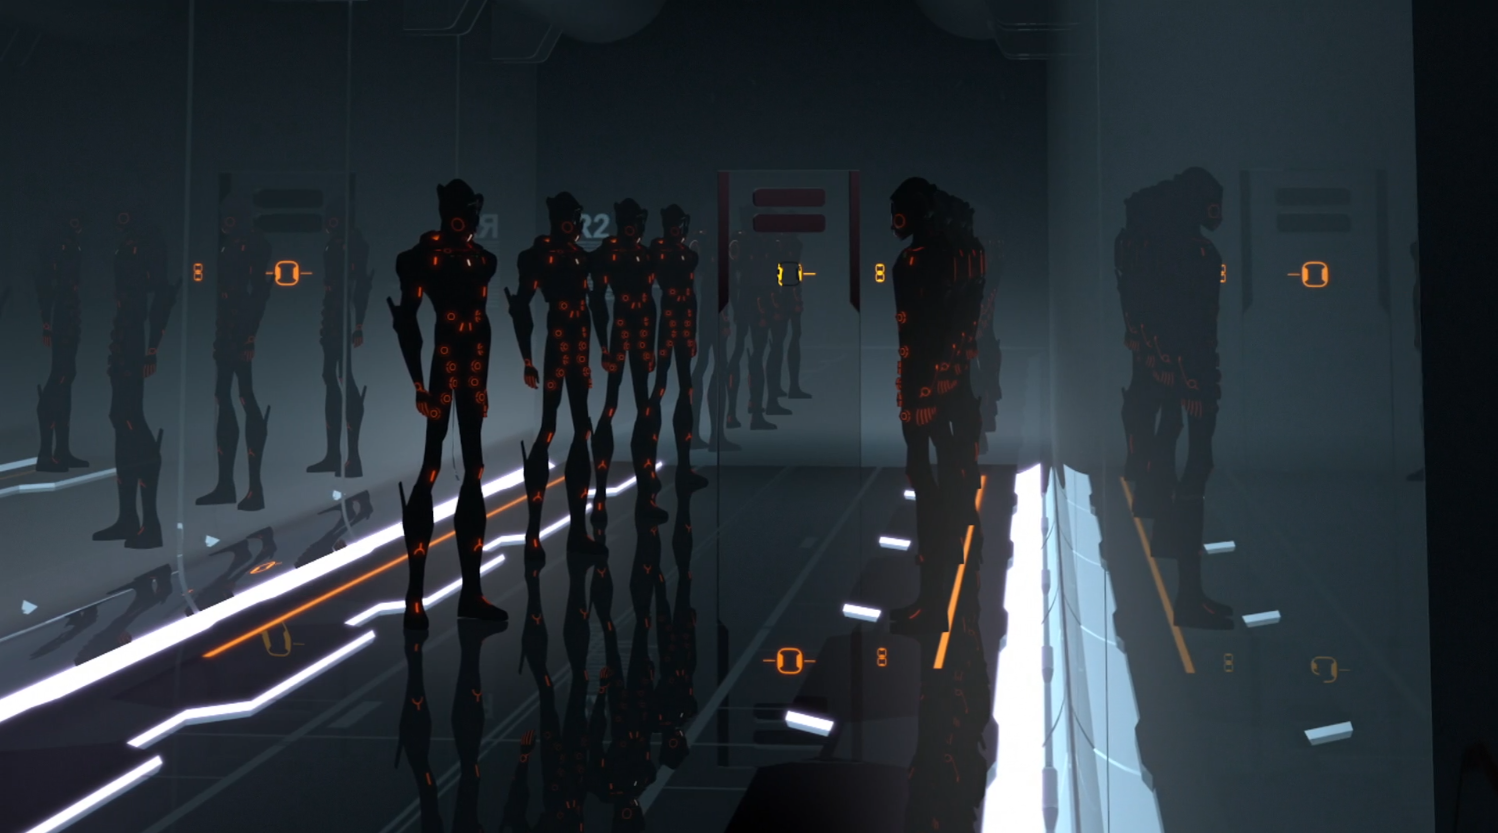 Cutler's guards - Terminal - Terminal - Tron: Uprising